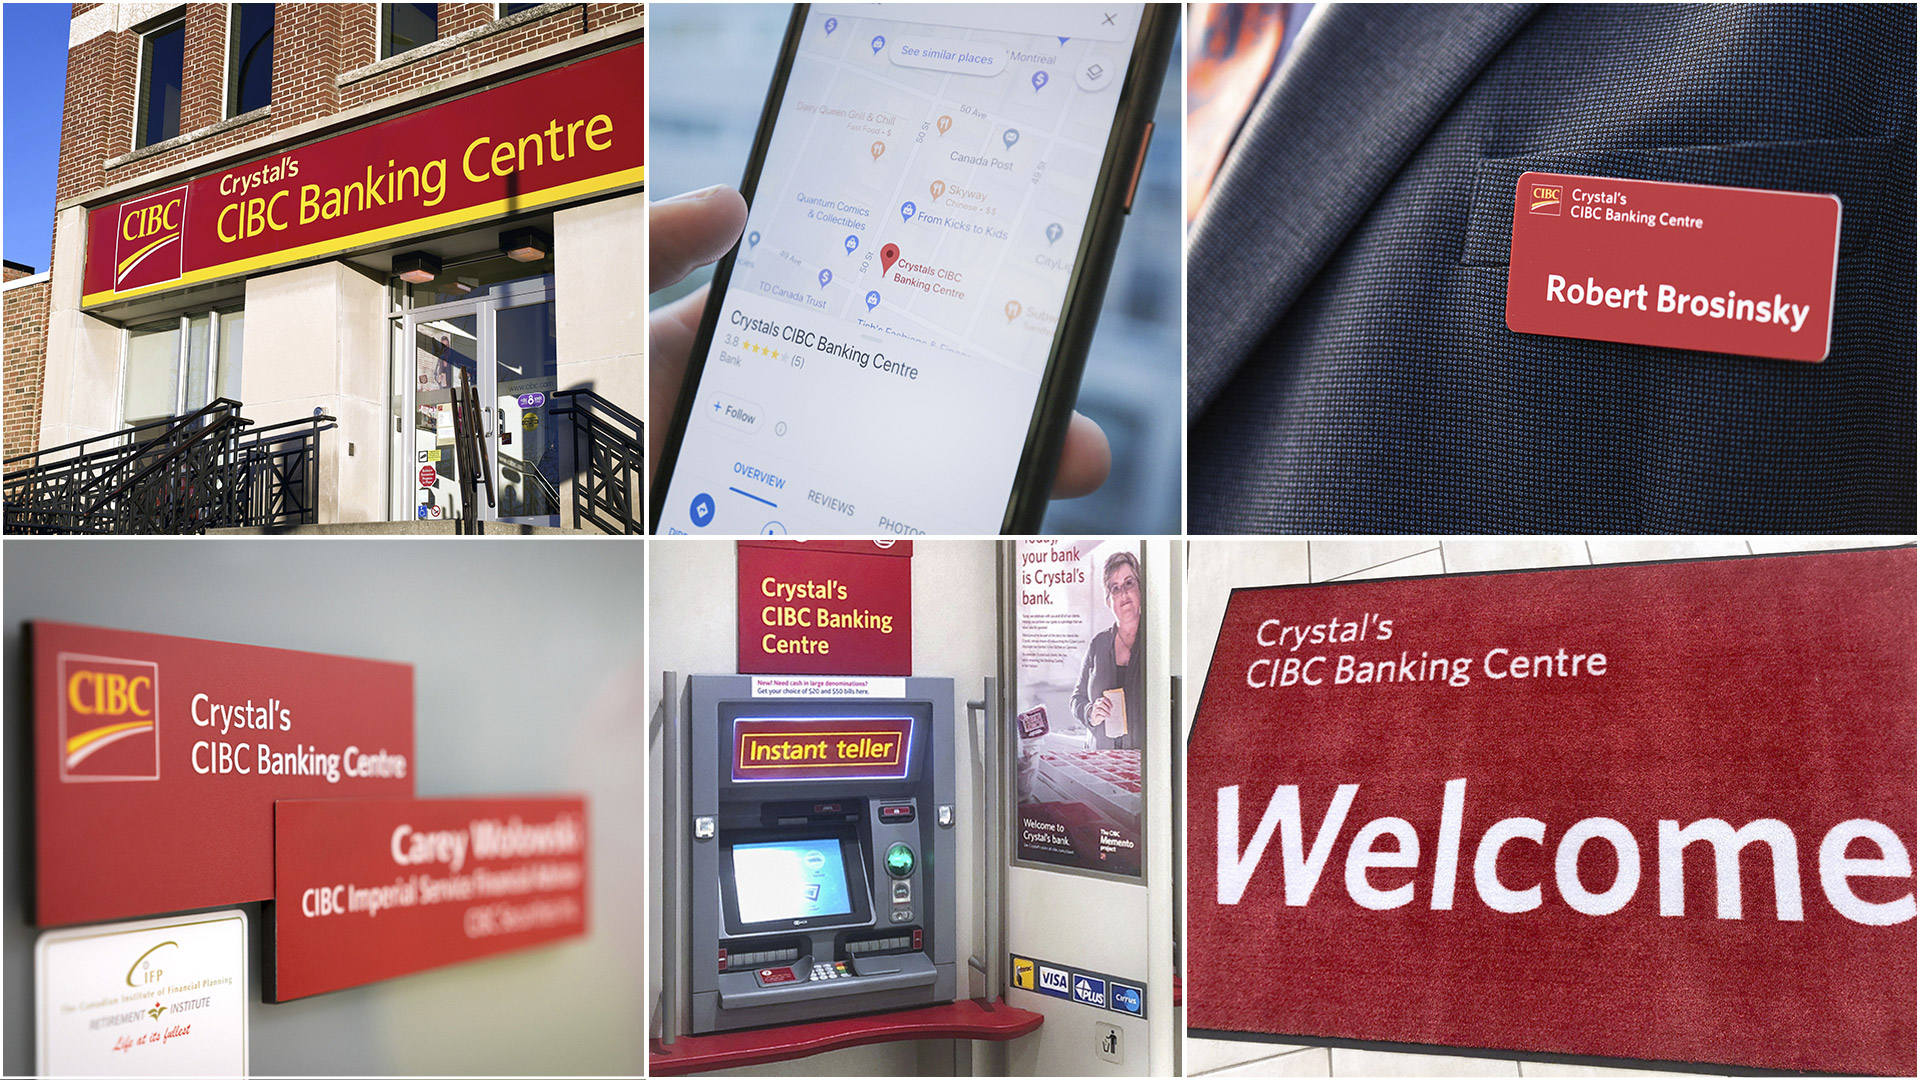 Crystals CIBC Banking Centre - Set of branded images - Fuse Marketing